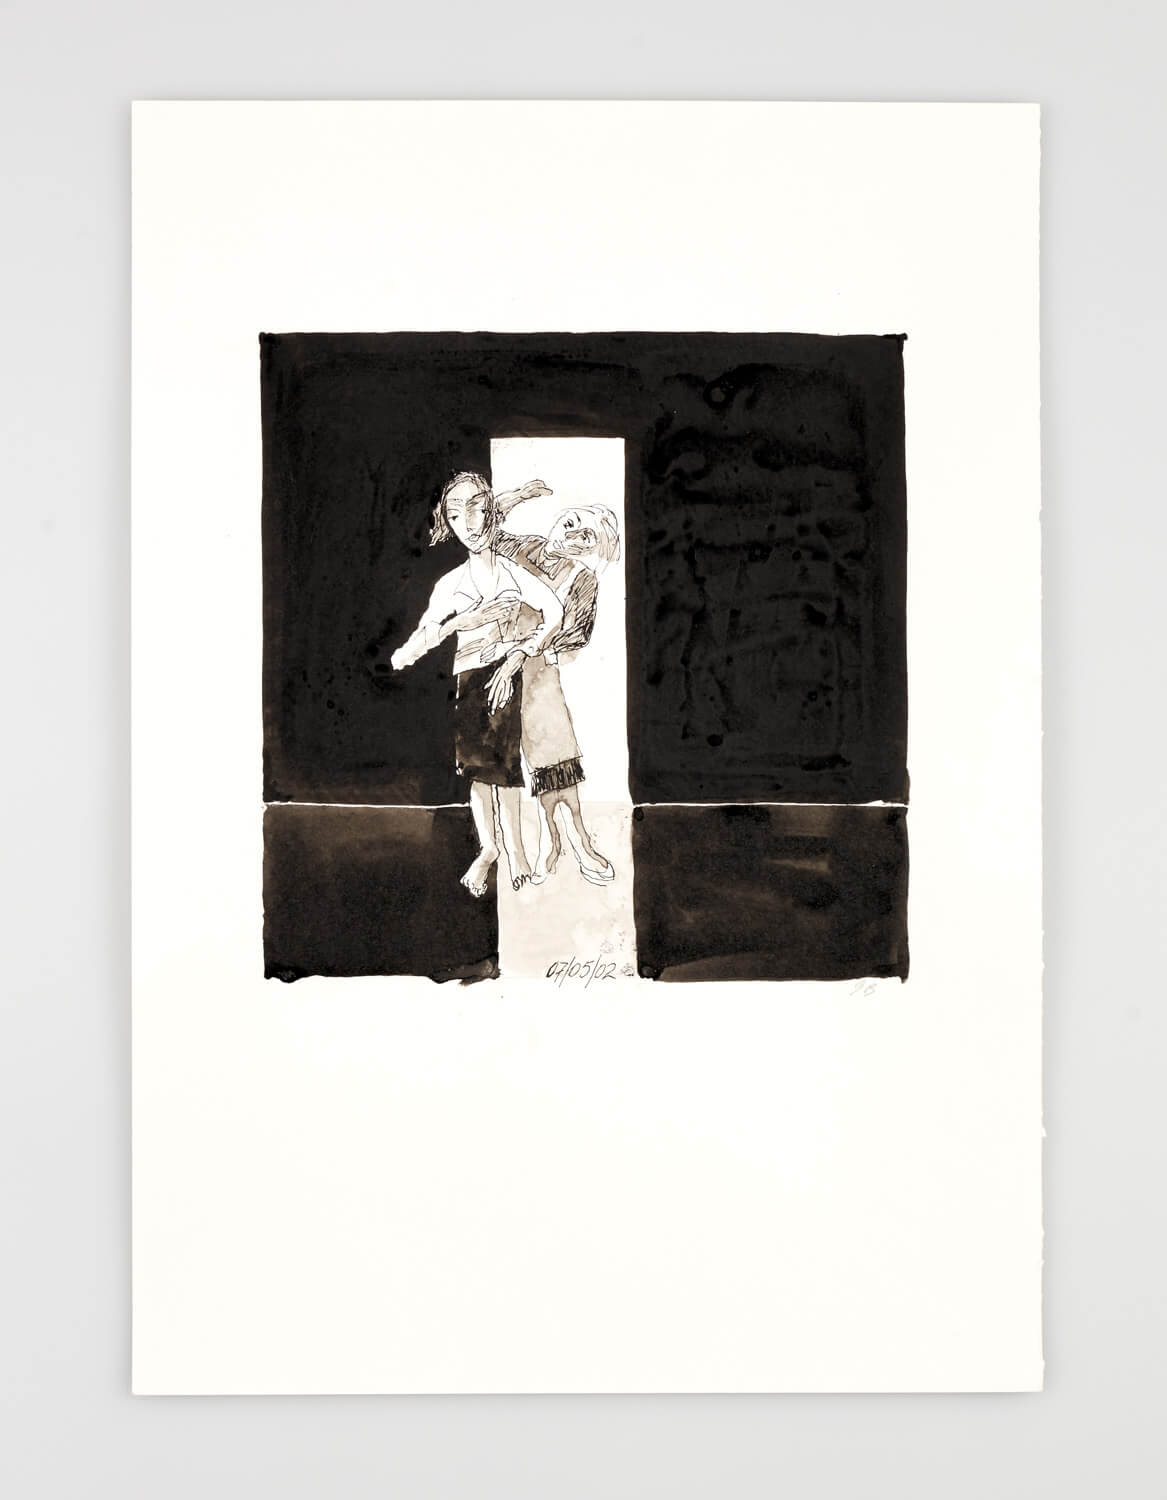 JB067 - Two Women - Perfectly dressed - 2002 - 50 x 35 cm - Indian ink and was